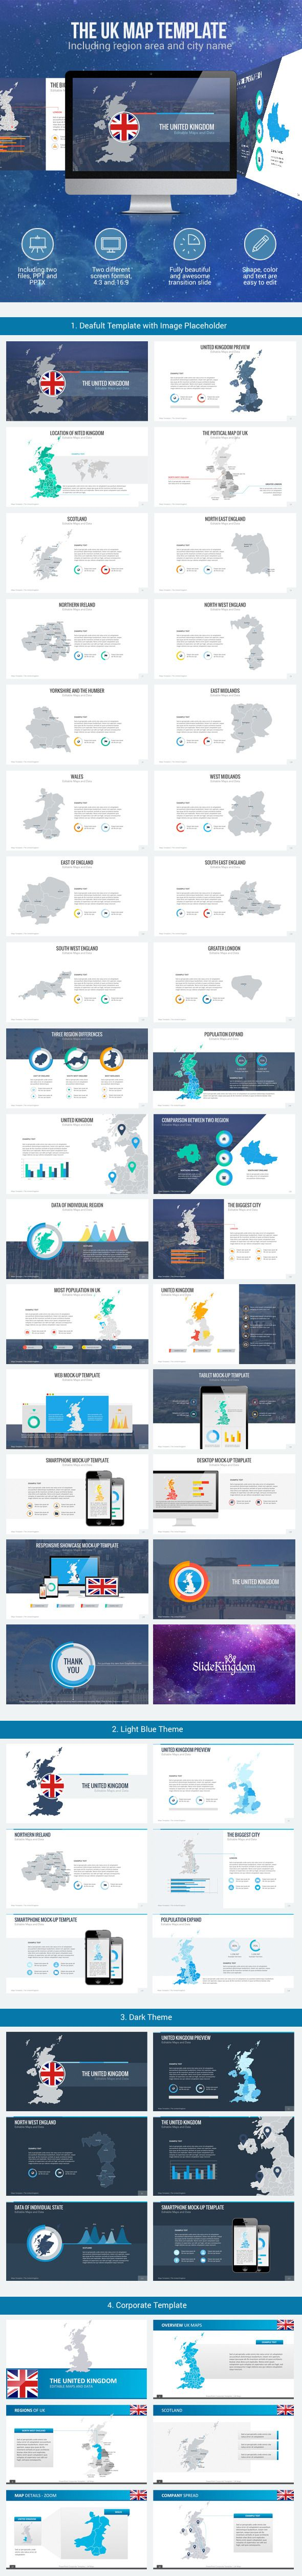 United Kingdom Maps (PowerPoint Templates)